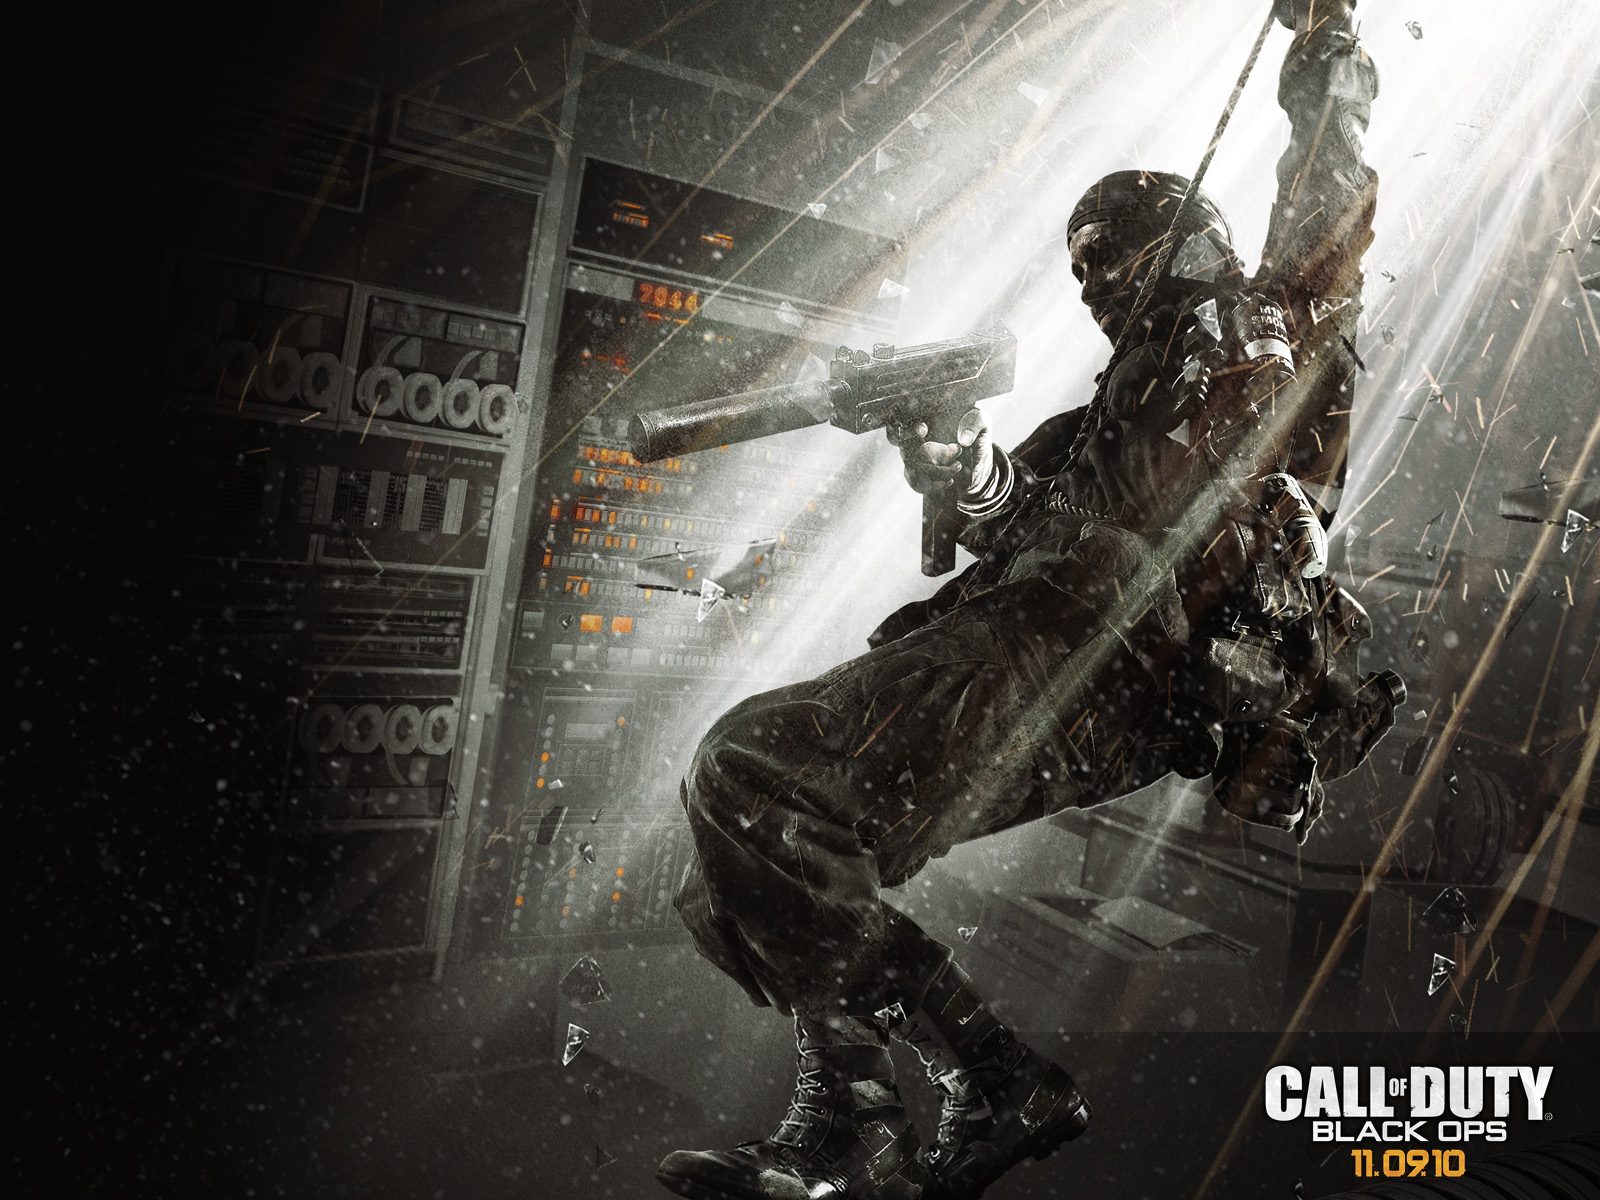 black ops zombies wallpaper - photo #6